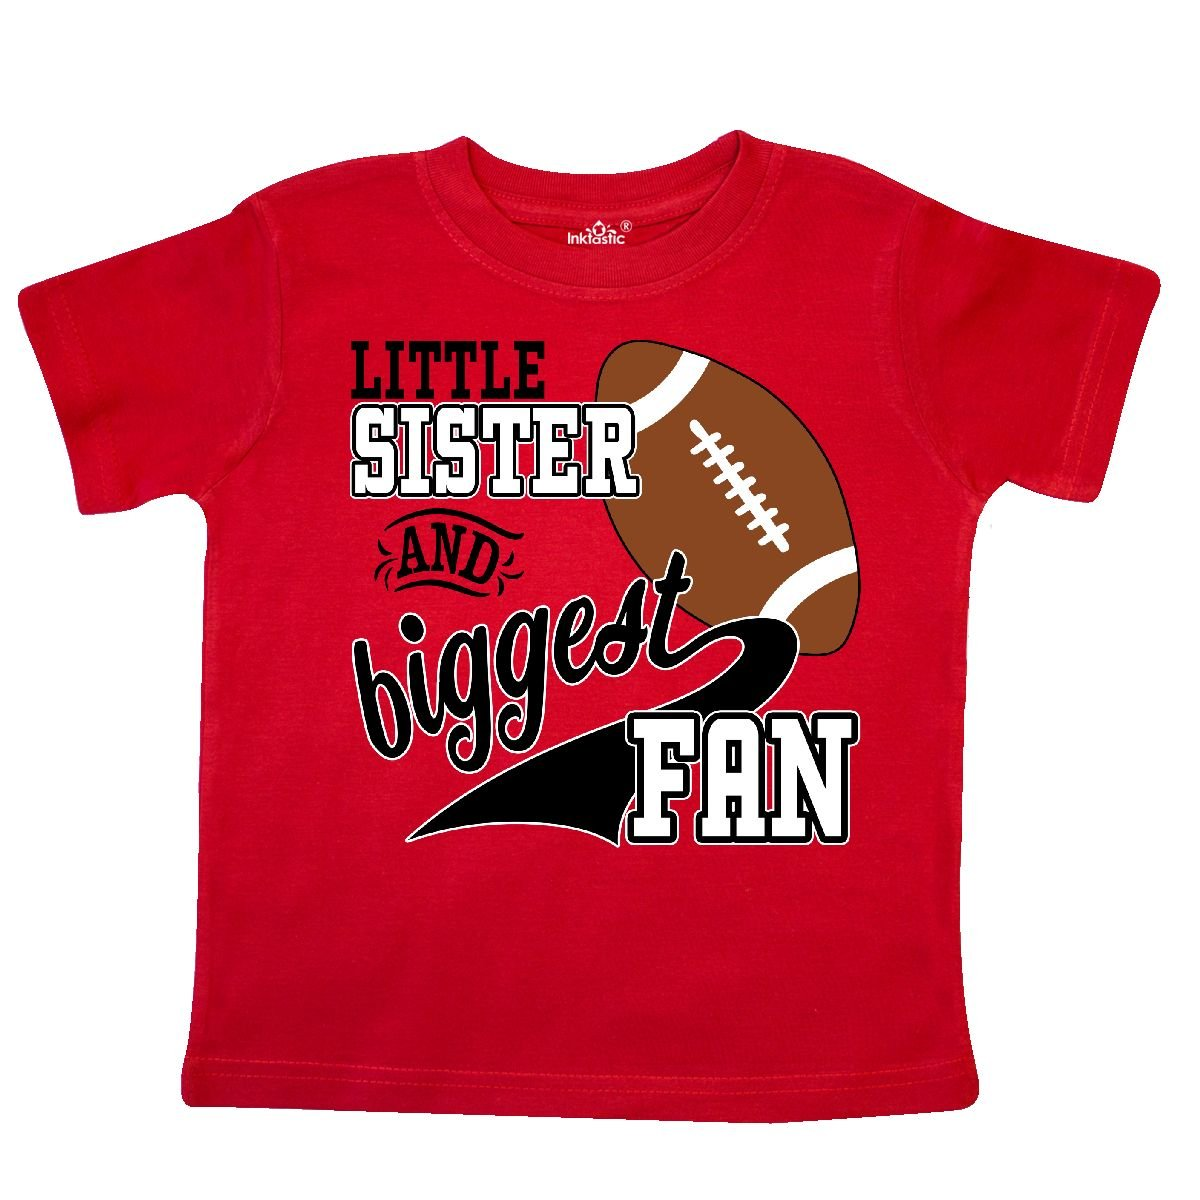 inktastic Little Sister and Biggest Fan Football Player Toddler T-Shirt